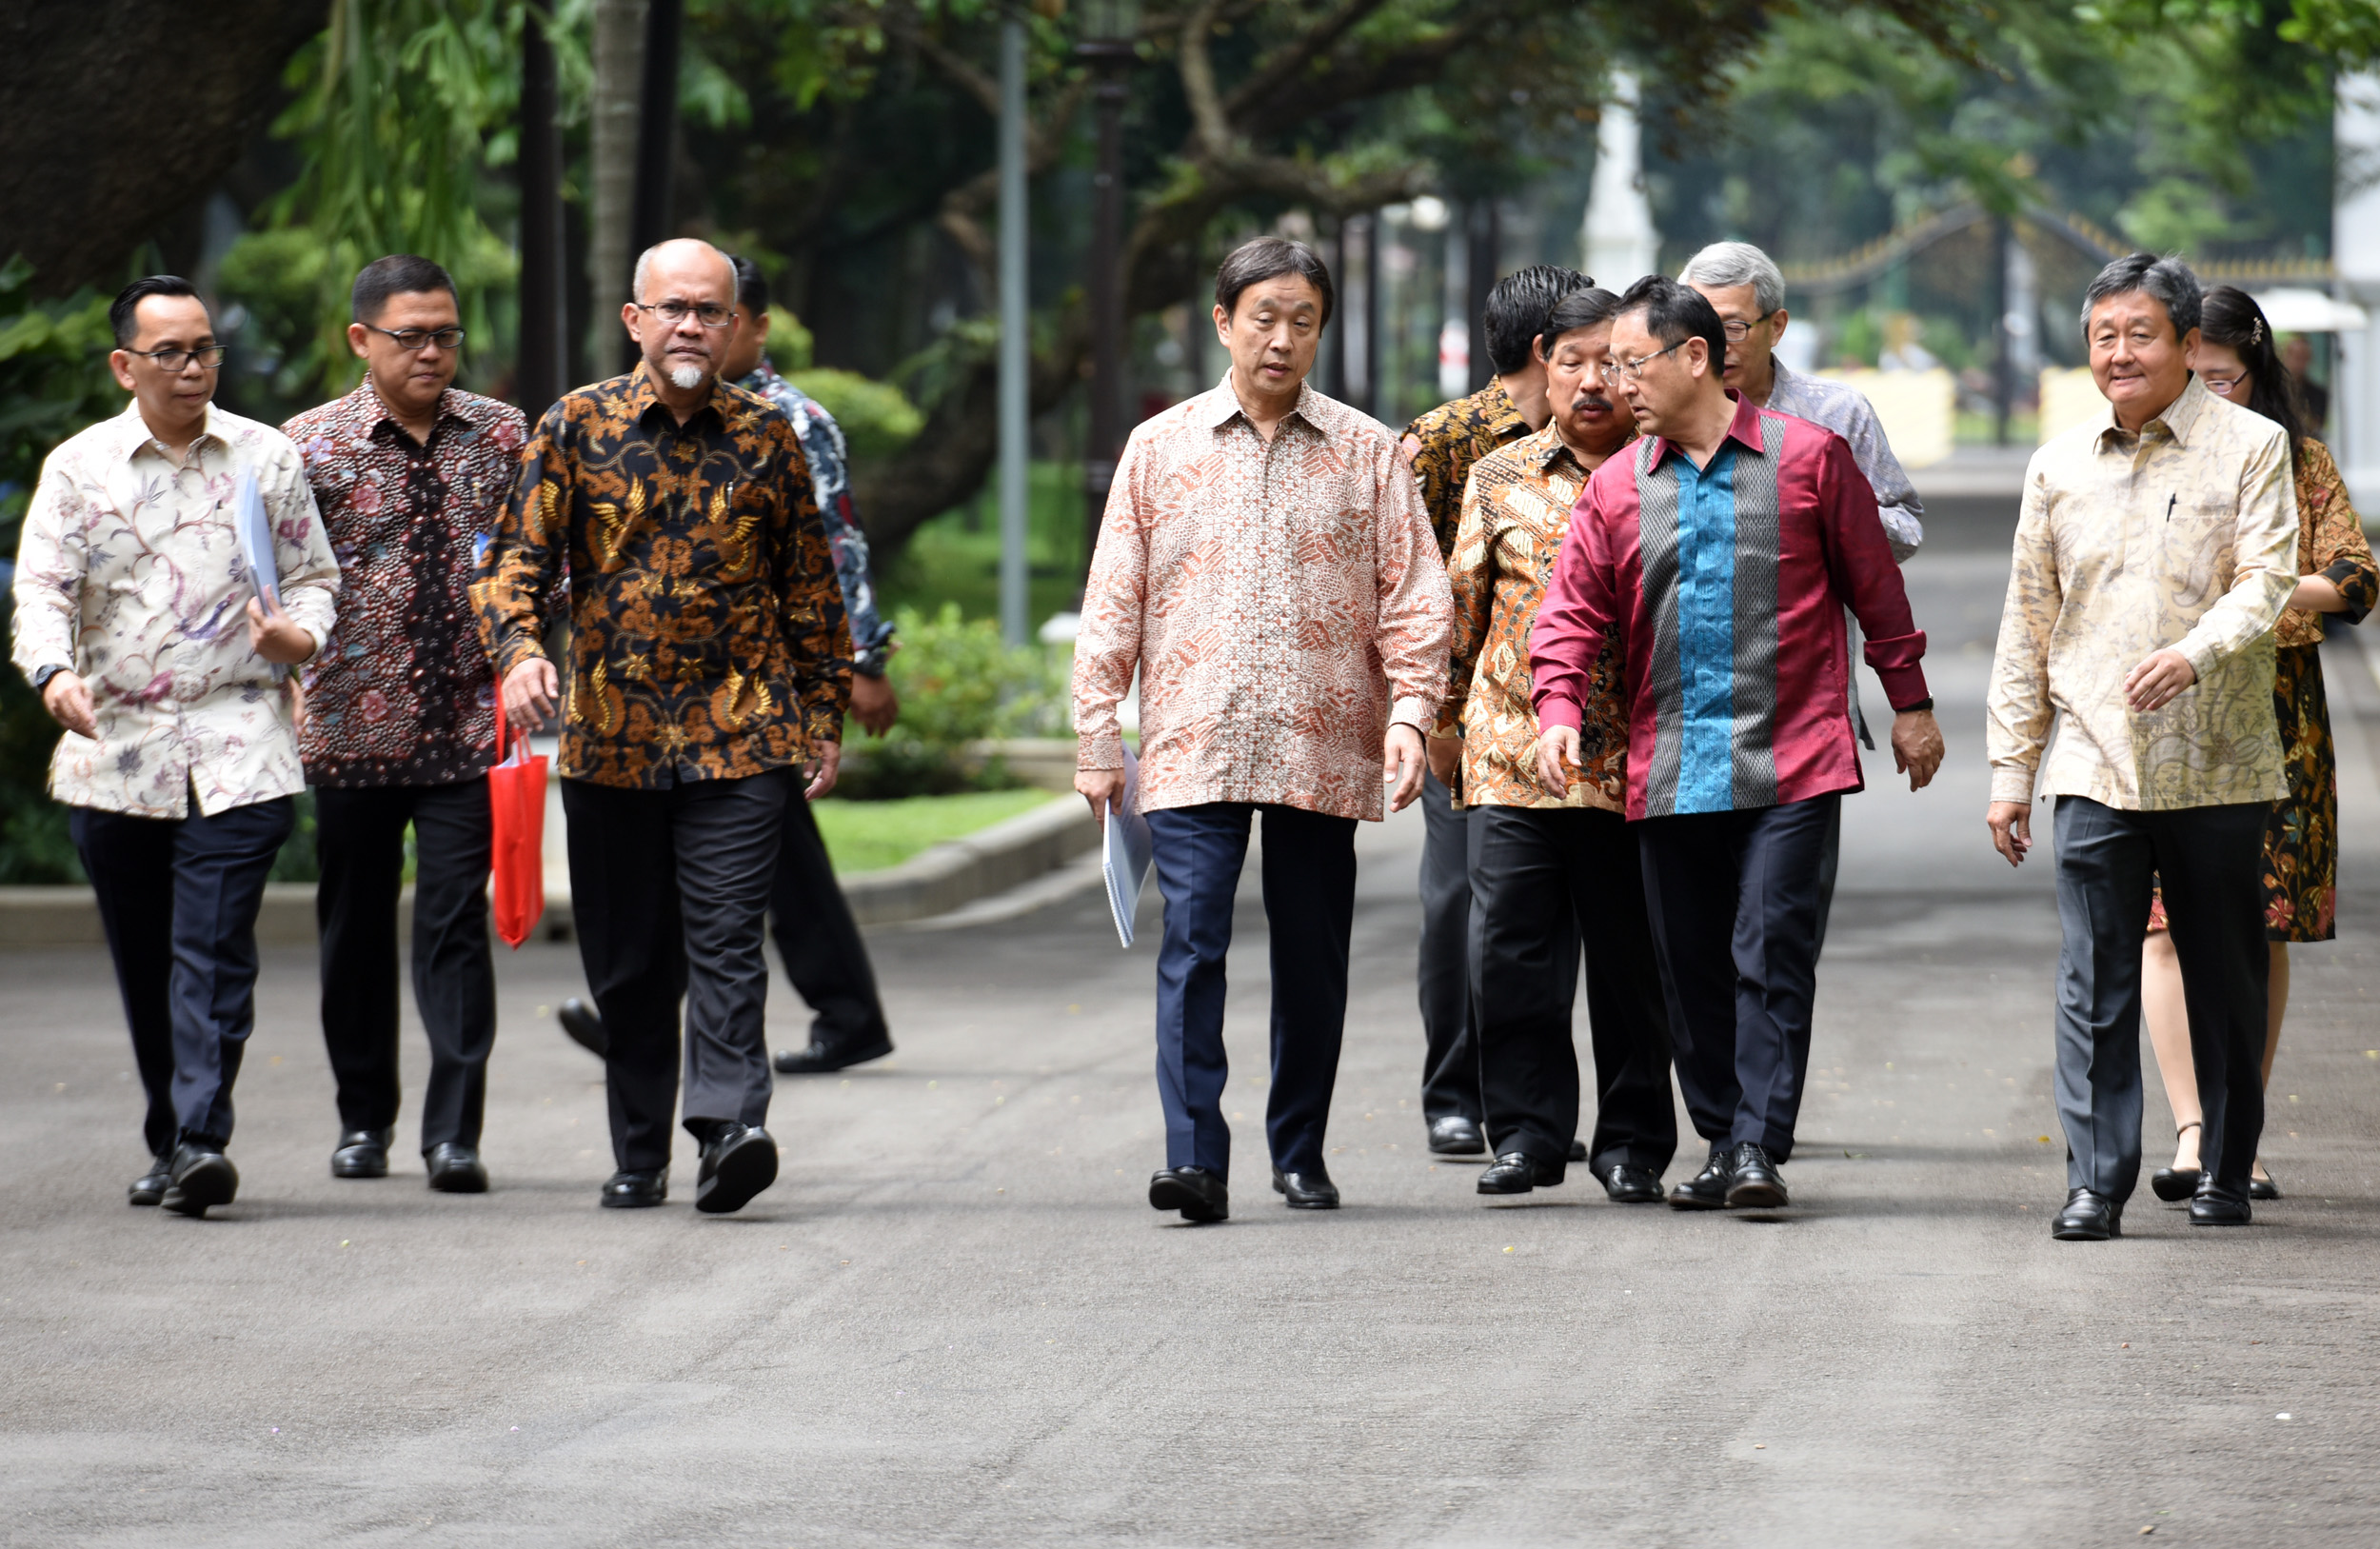 President of Toyota Motor Corporation Akio Toyoda accompanied by a number of executives of Toyota in Indonesia, after received by President Jokowi at the Merdeka Palace, Jakarta, Monday (13/3) morning (Photo: Rahmat/PR)